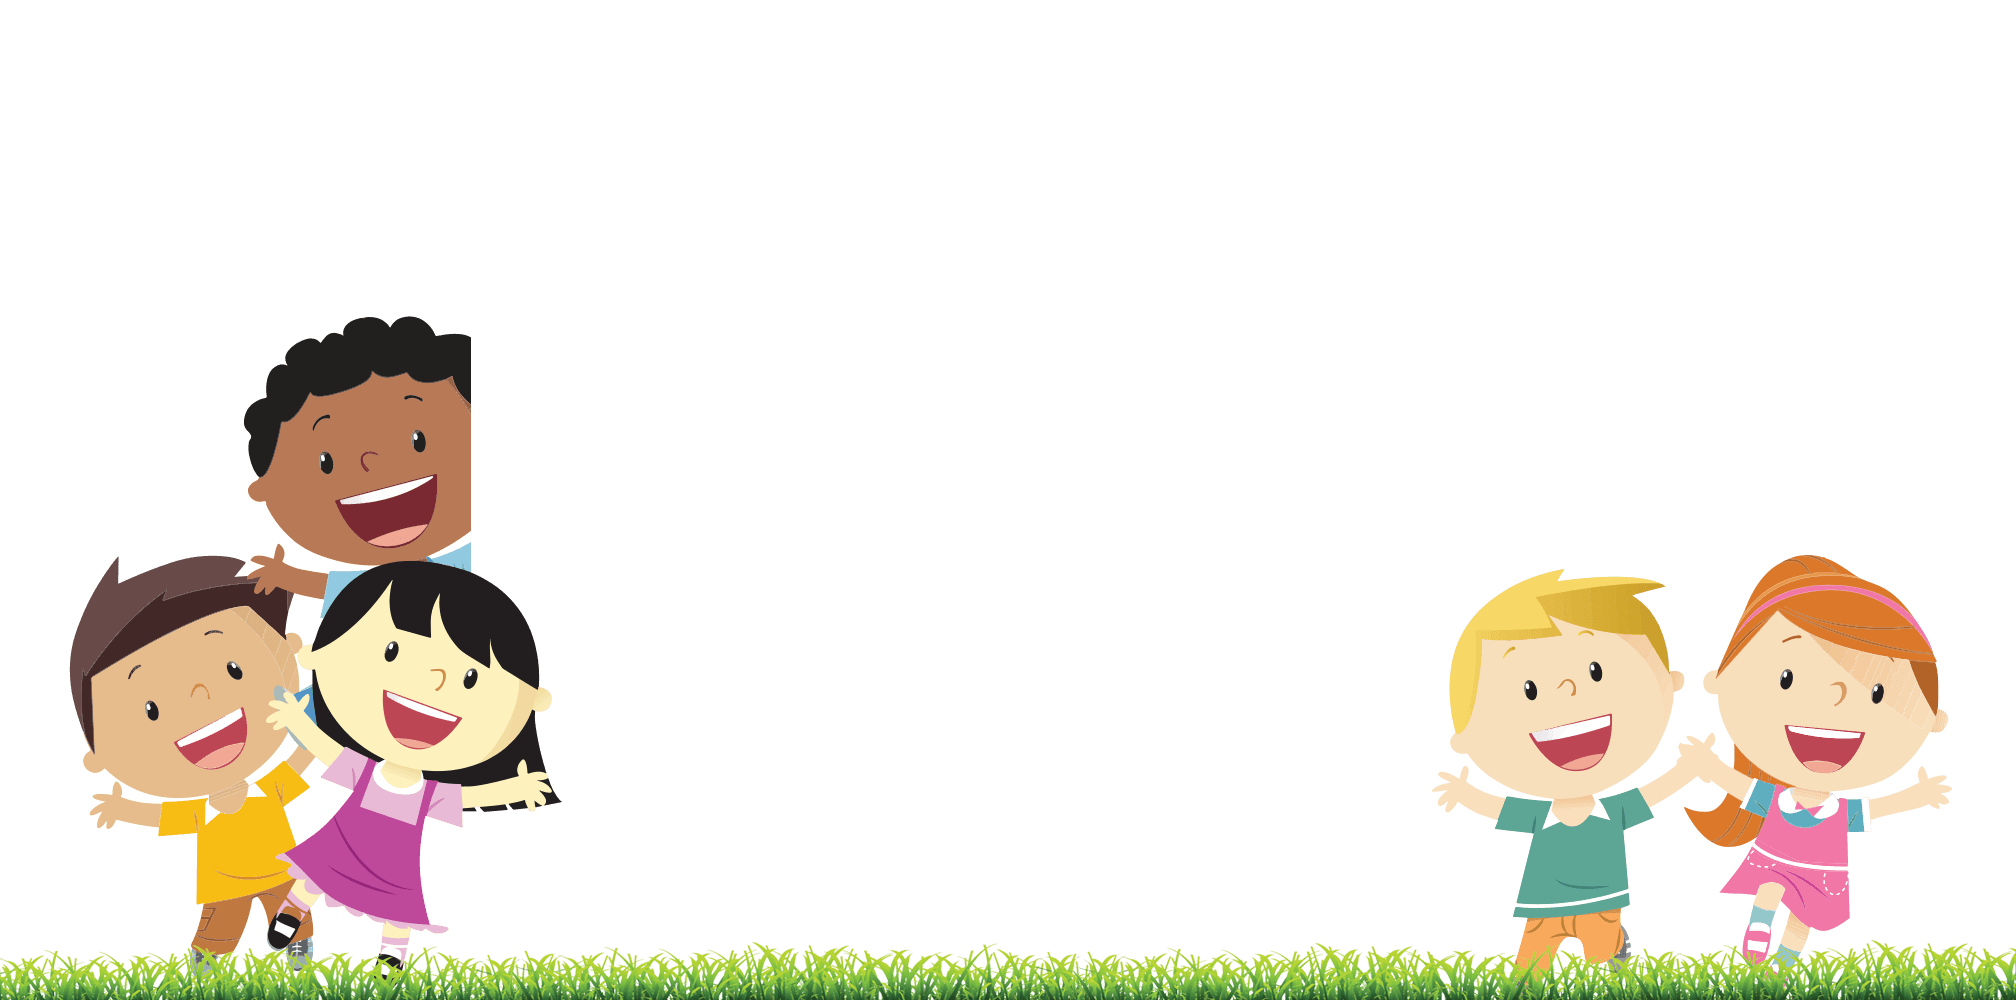 Png backgrounds for kids. Children wallpaper cave school